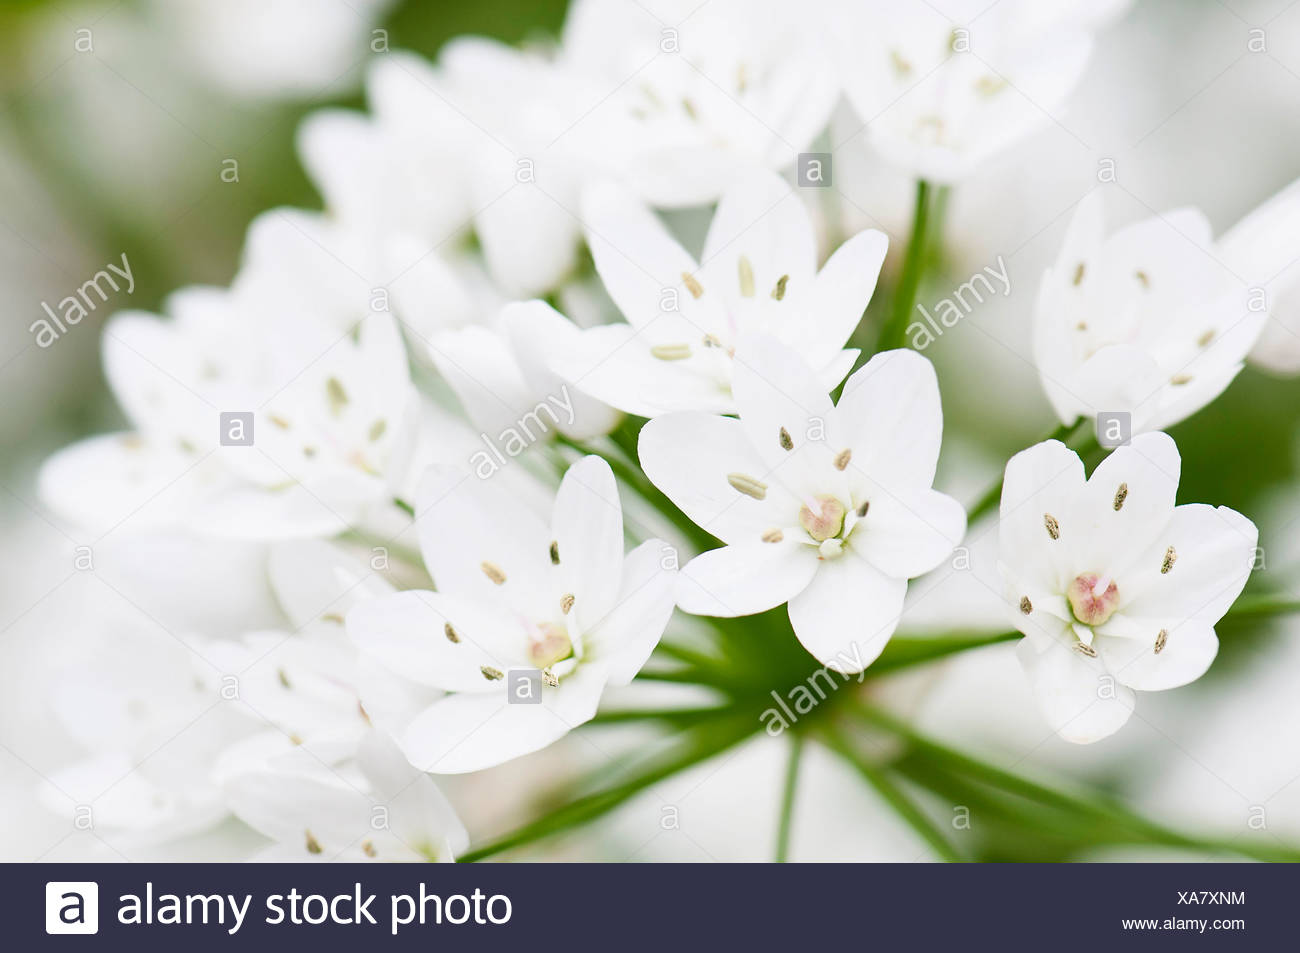 White Star Shaped Flowers Stock Photos White Star Shaped Flowers